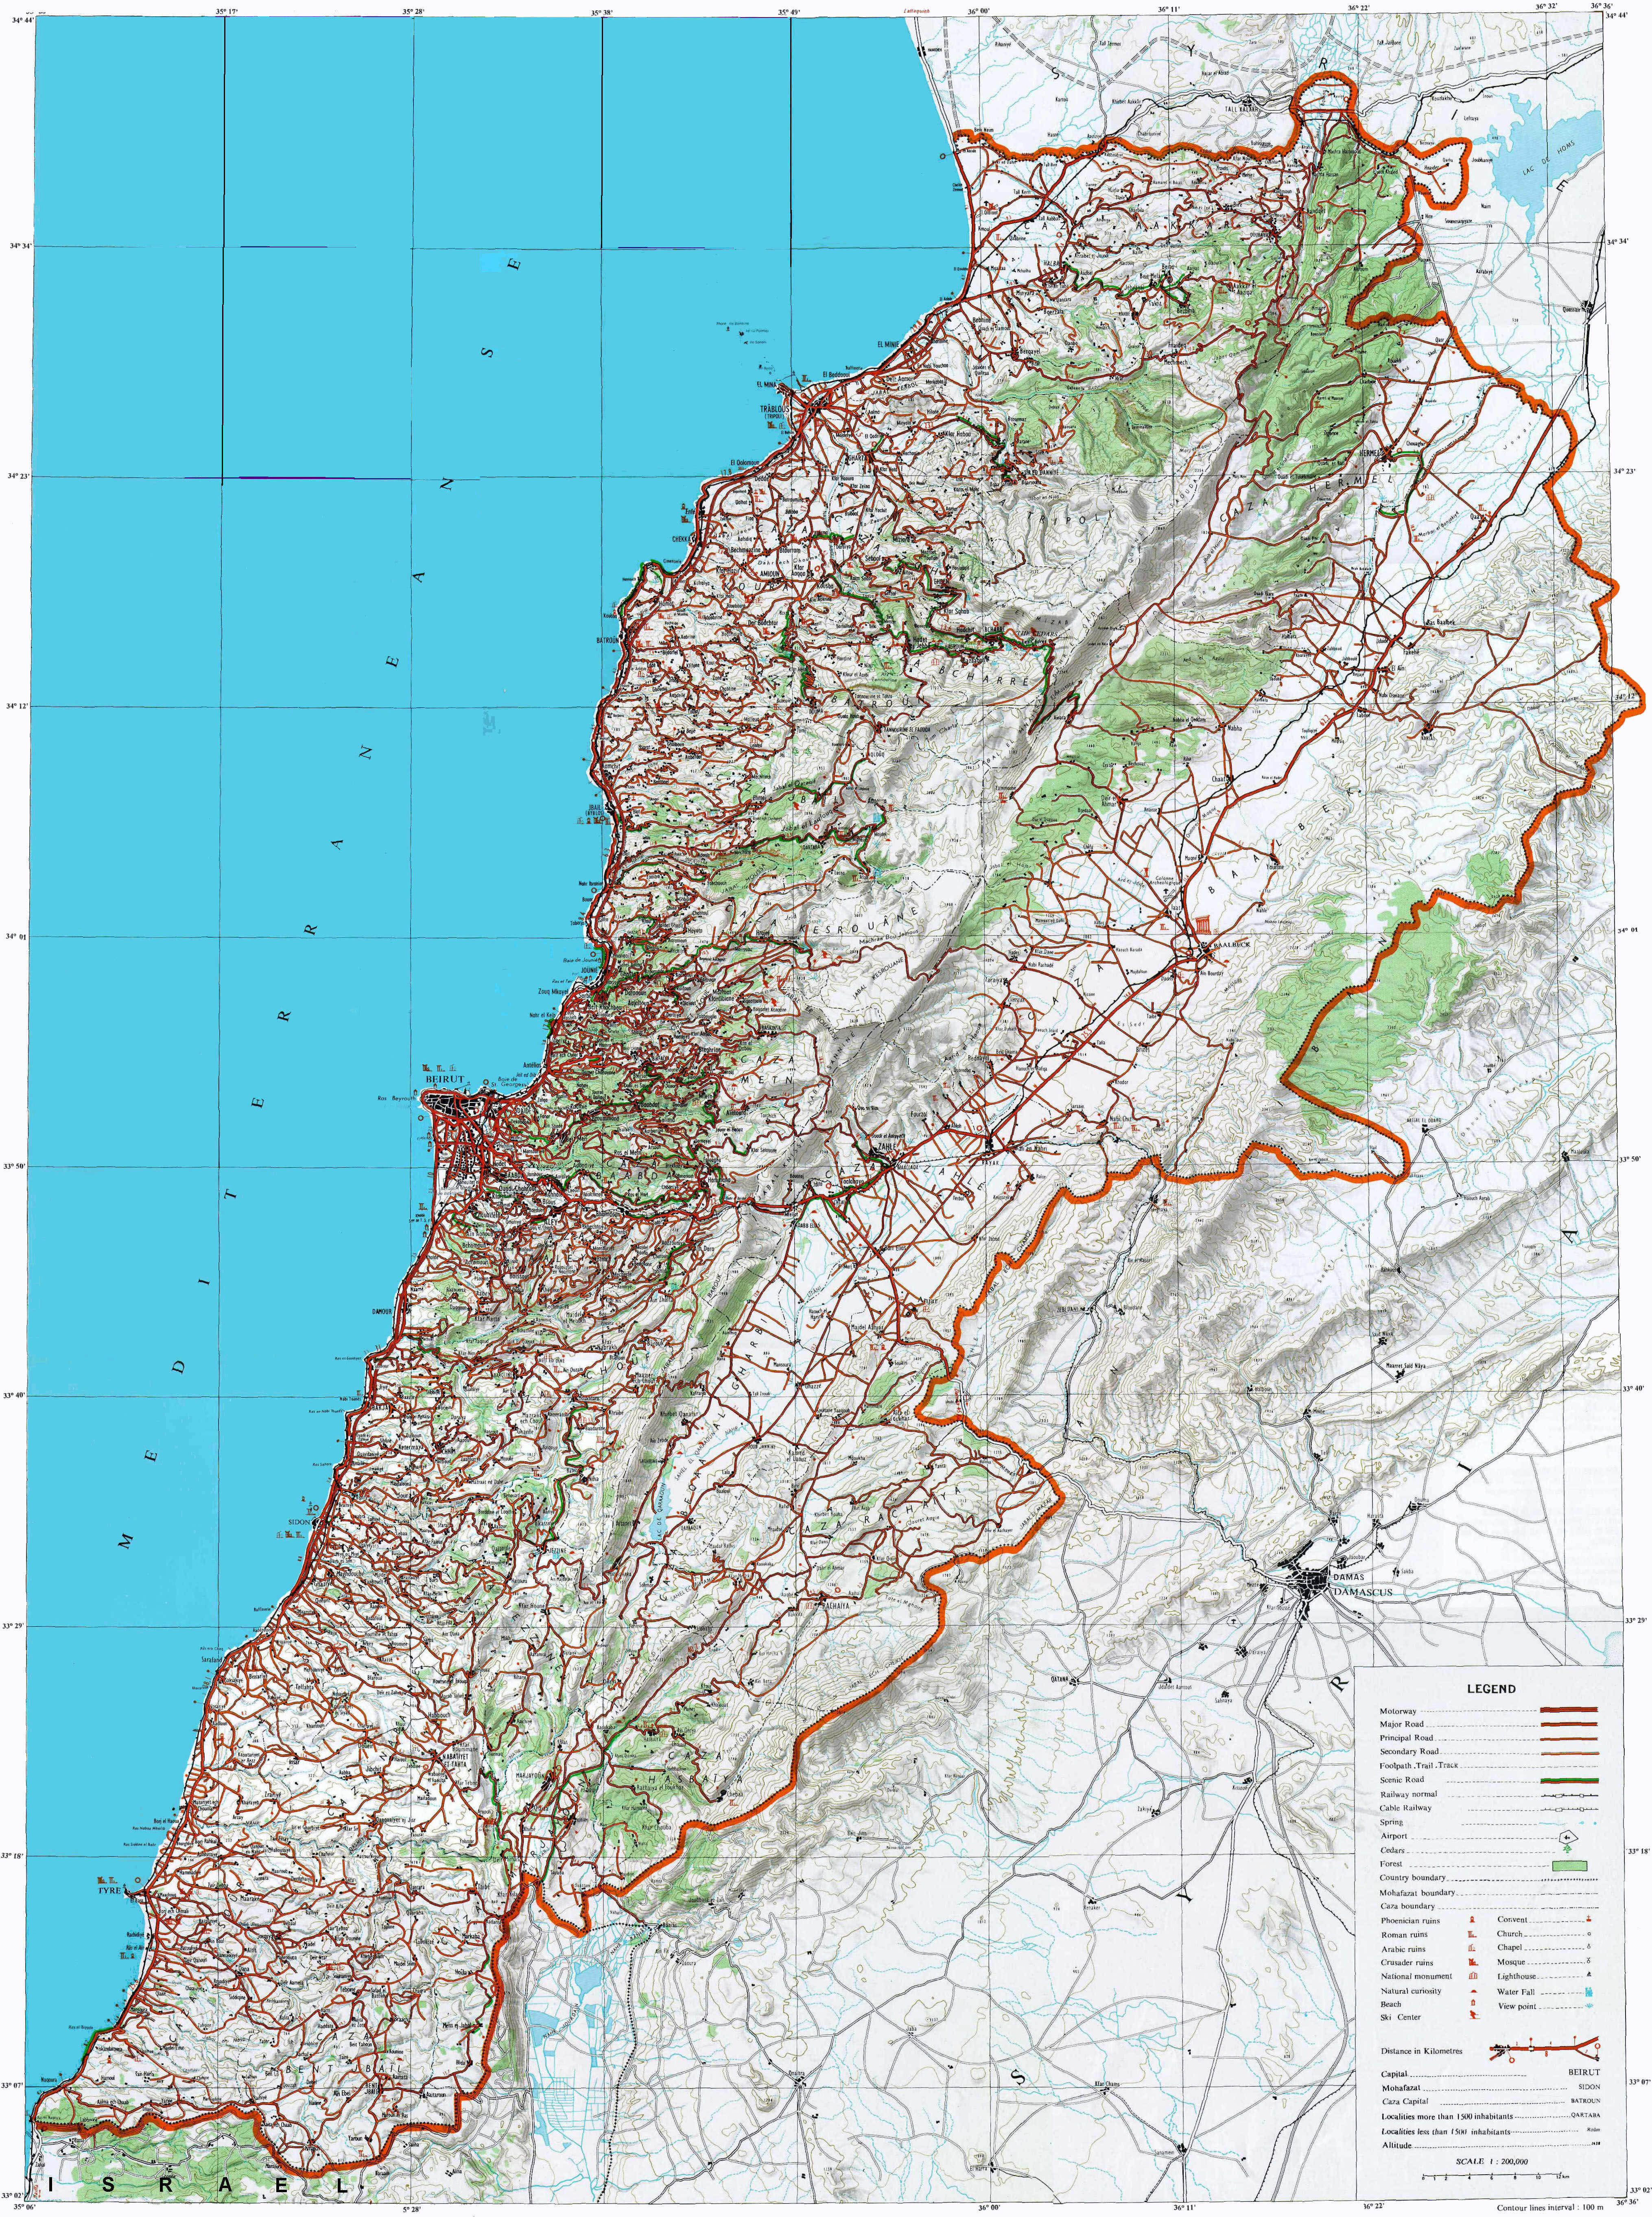 Detailed Topographical Map Of Lebanon With Other Marks